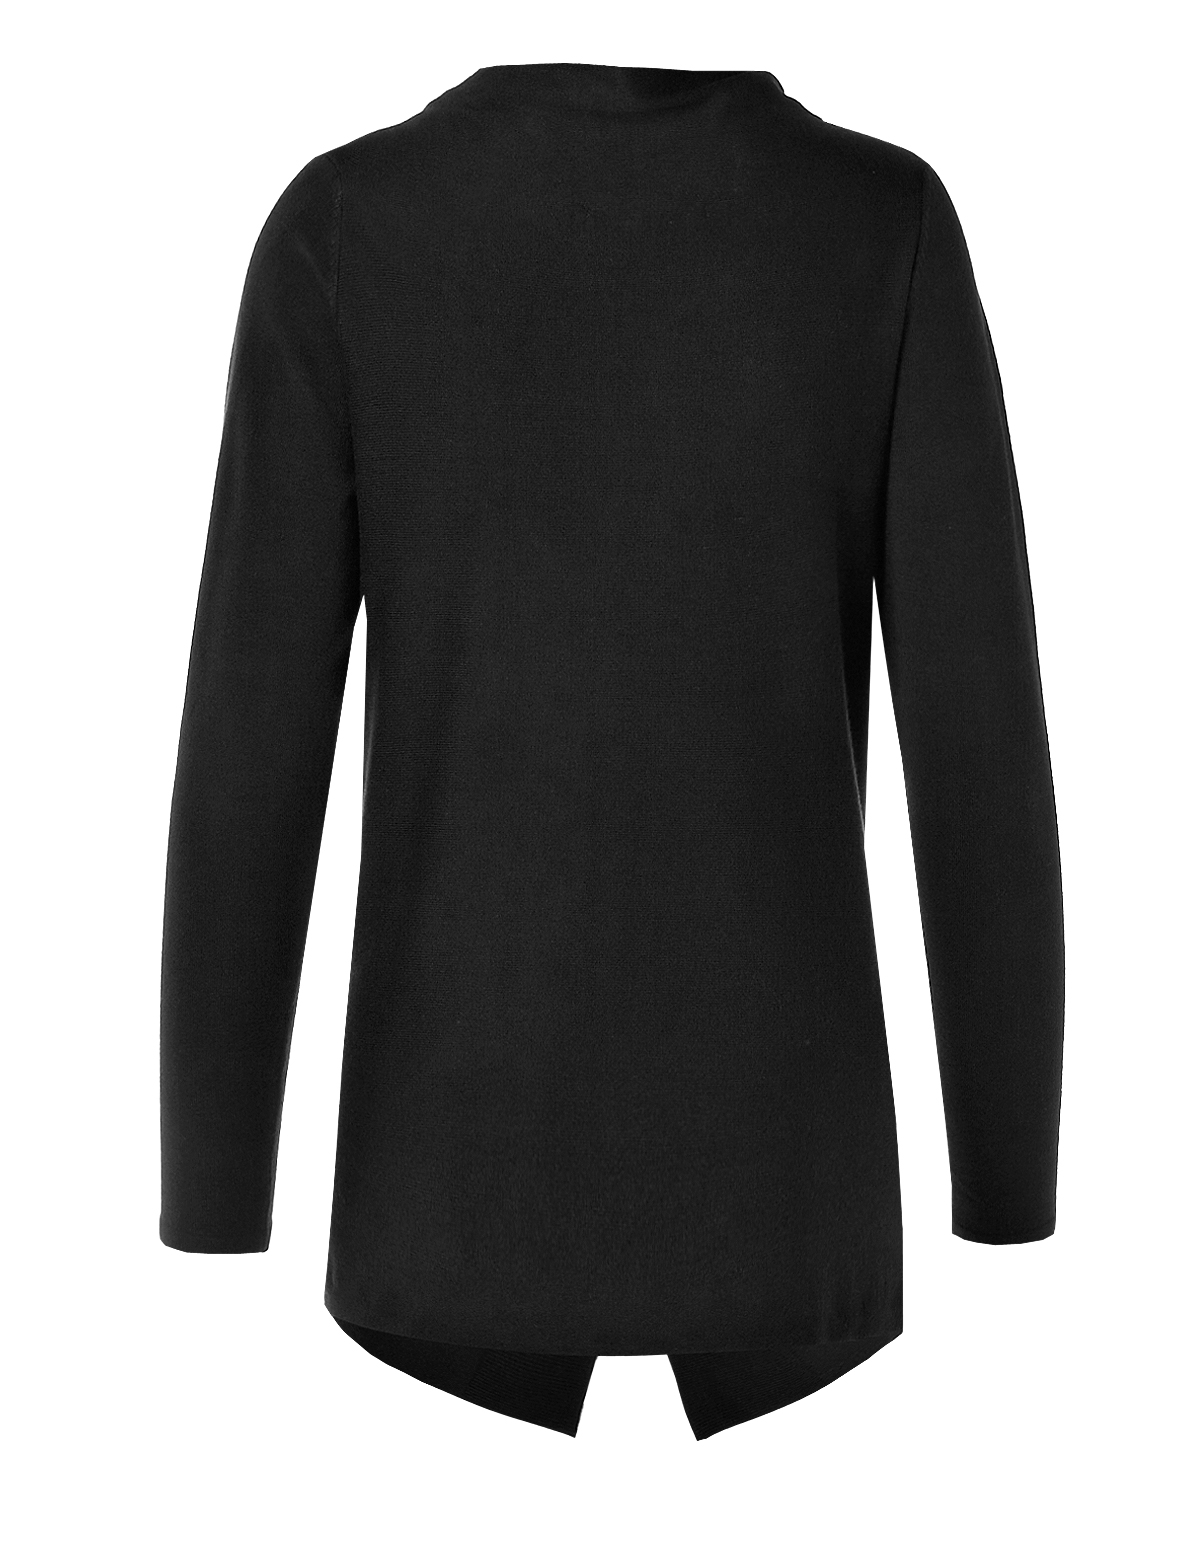 Black Wrap Sweater | Cleo